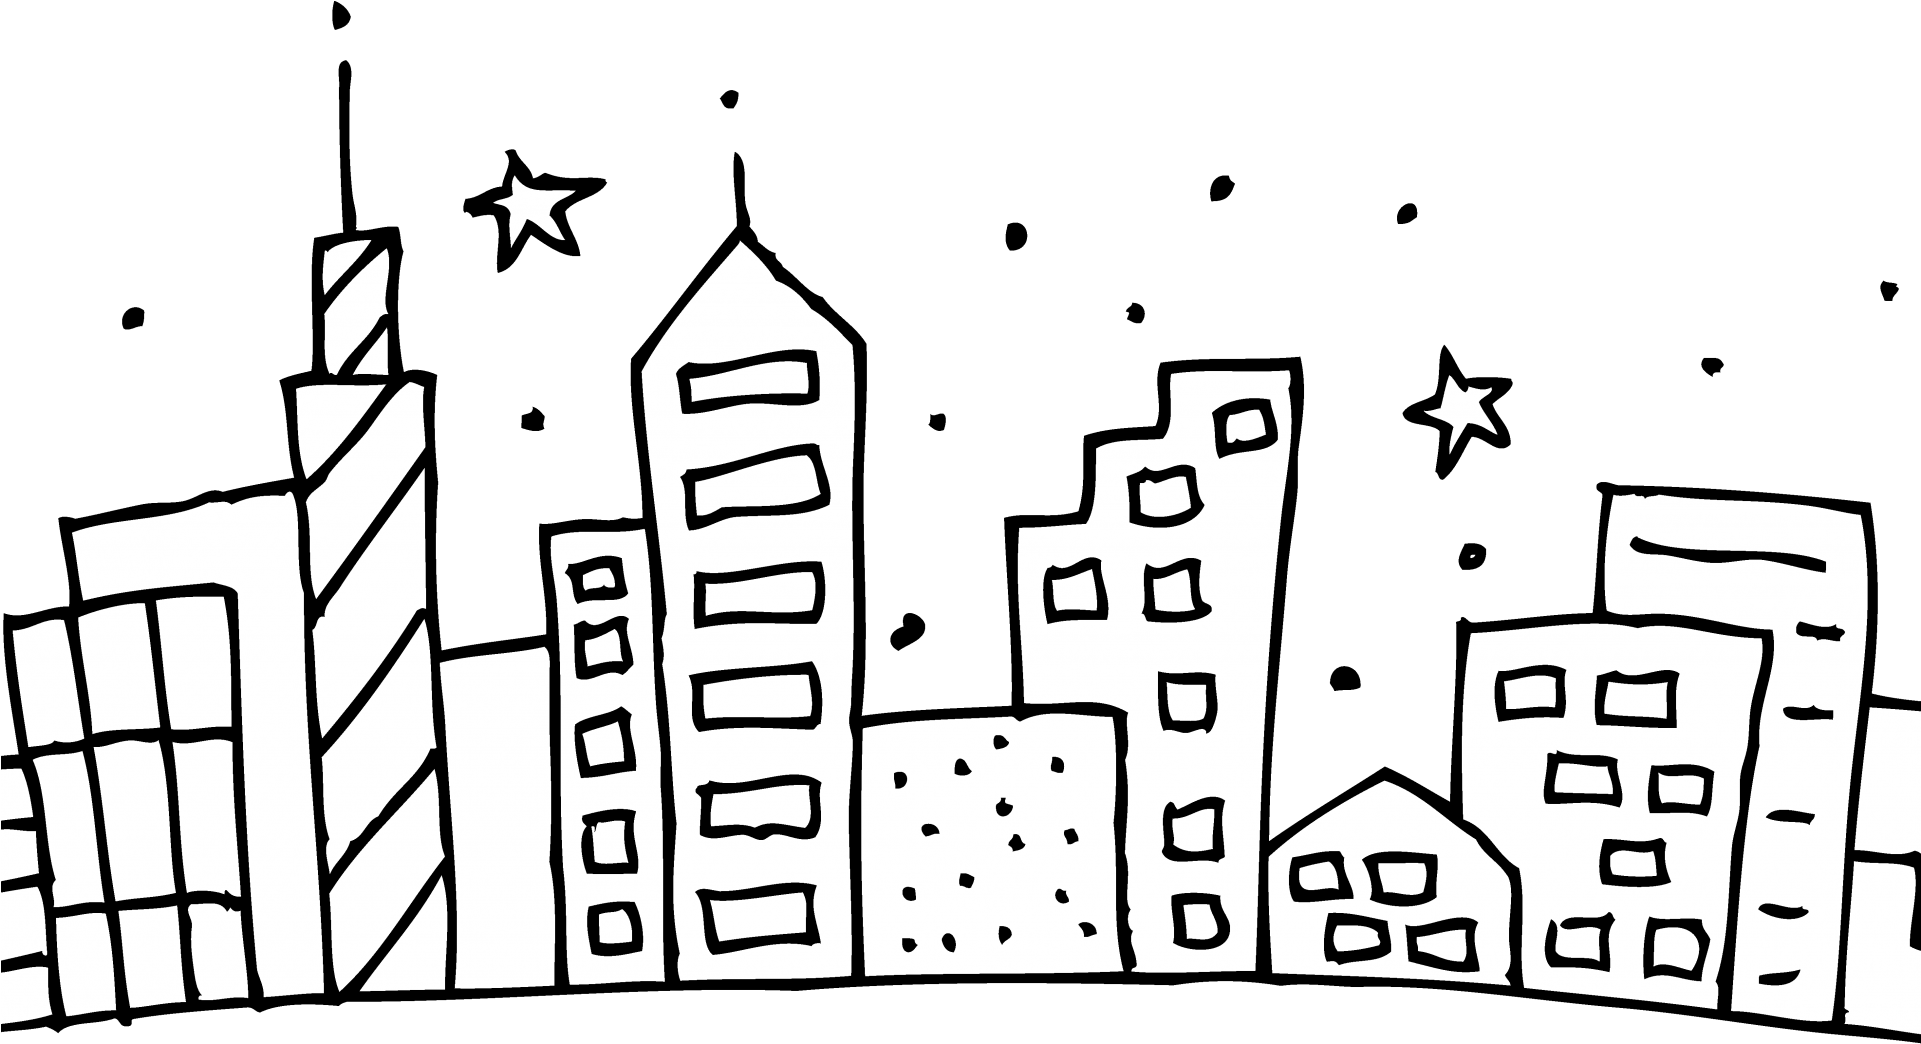 Chicago Skyline Coloring Page Cubs Pages At Getcolorings.